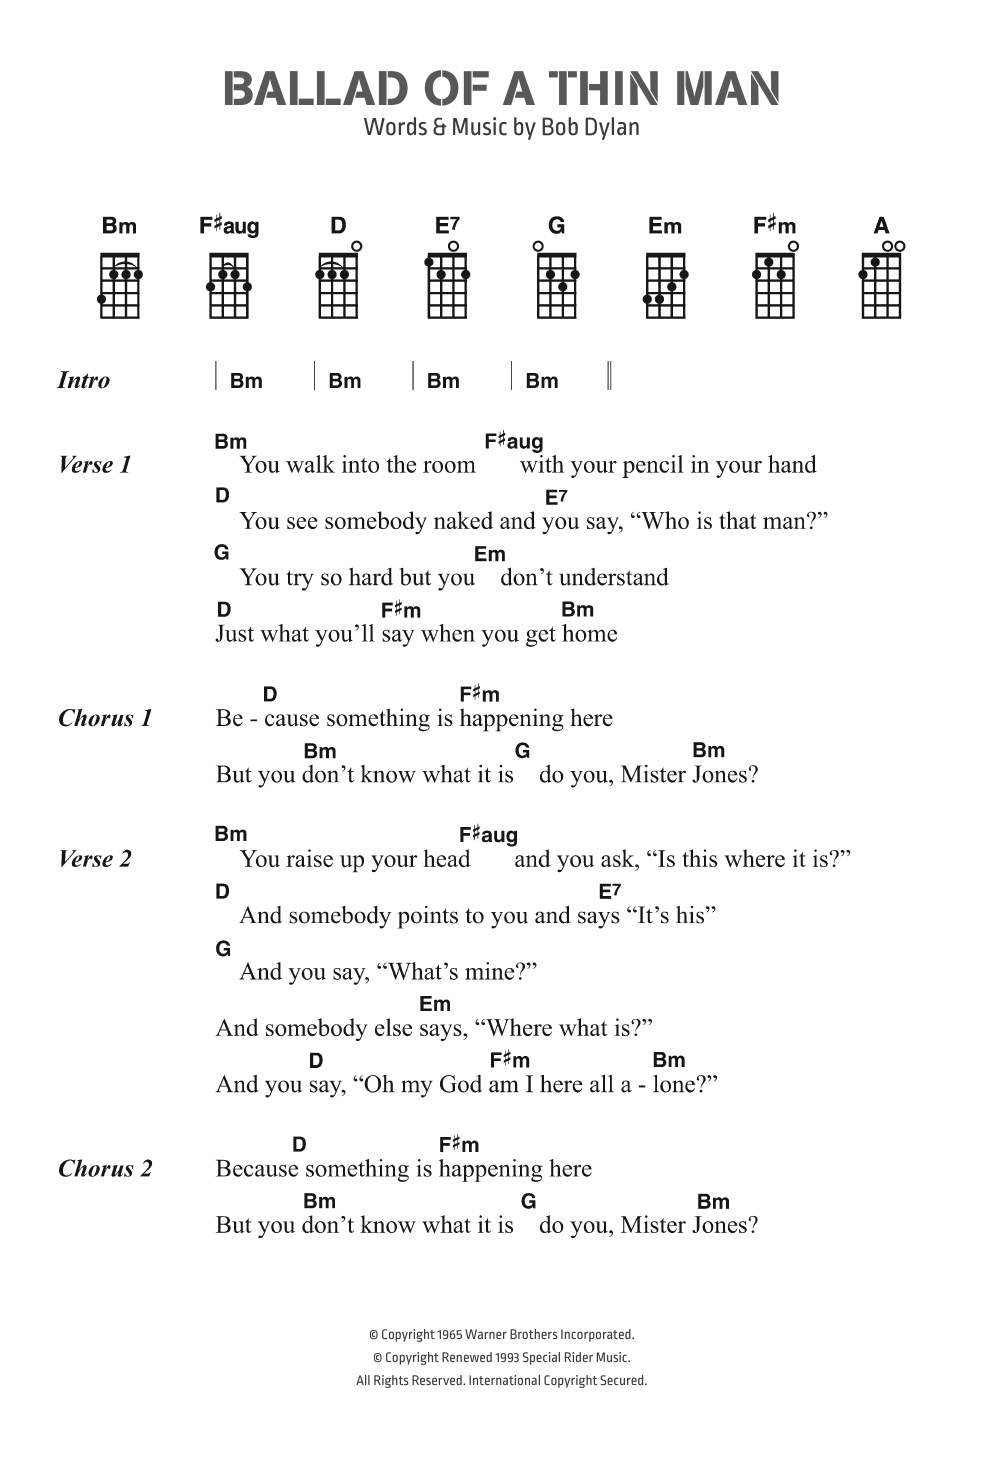 Twenty One Pilots Ukulele Chords Ballad Of A Thin Man Bob Dylan Ukulele Chordslyrics Digital Sheet Music